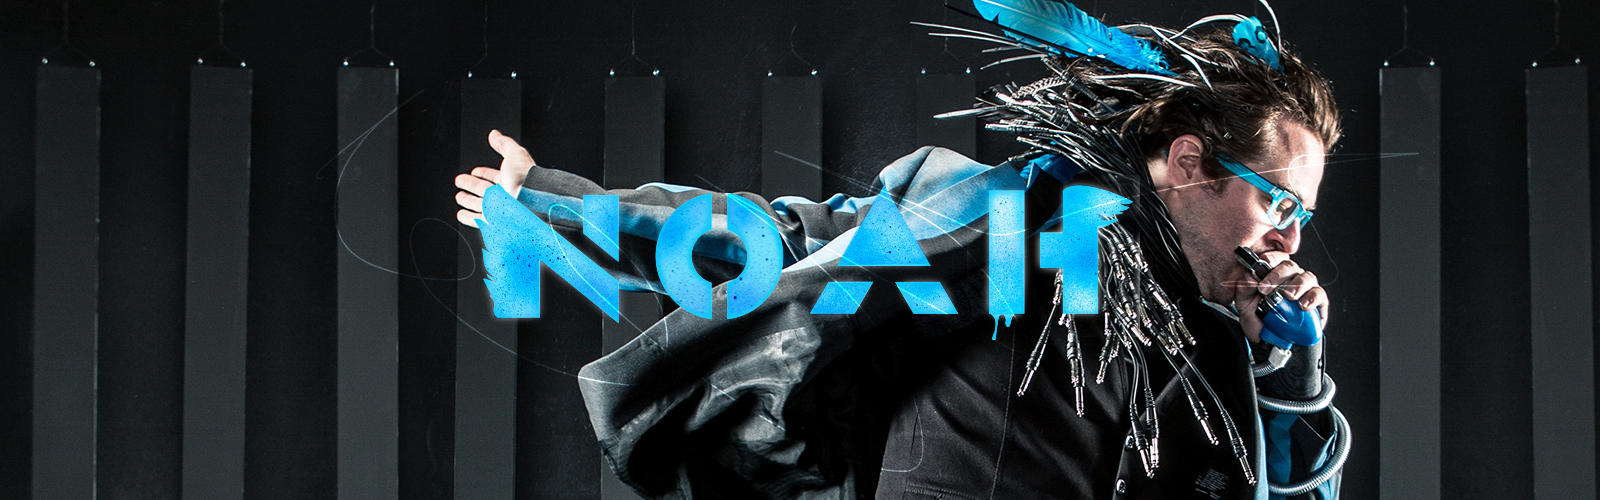 Noah-Website-Homepage-Header-jumpingblack